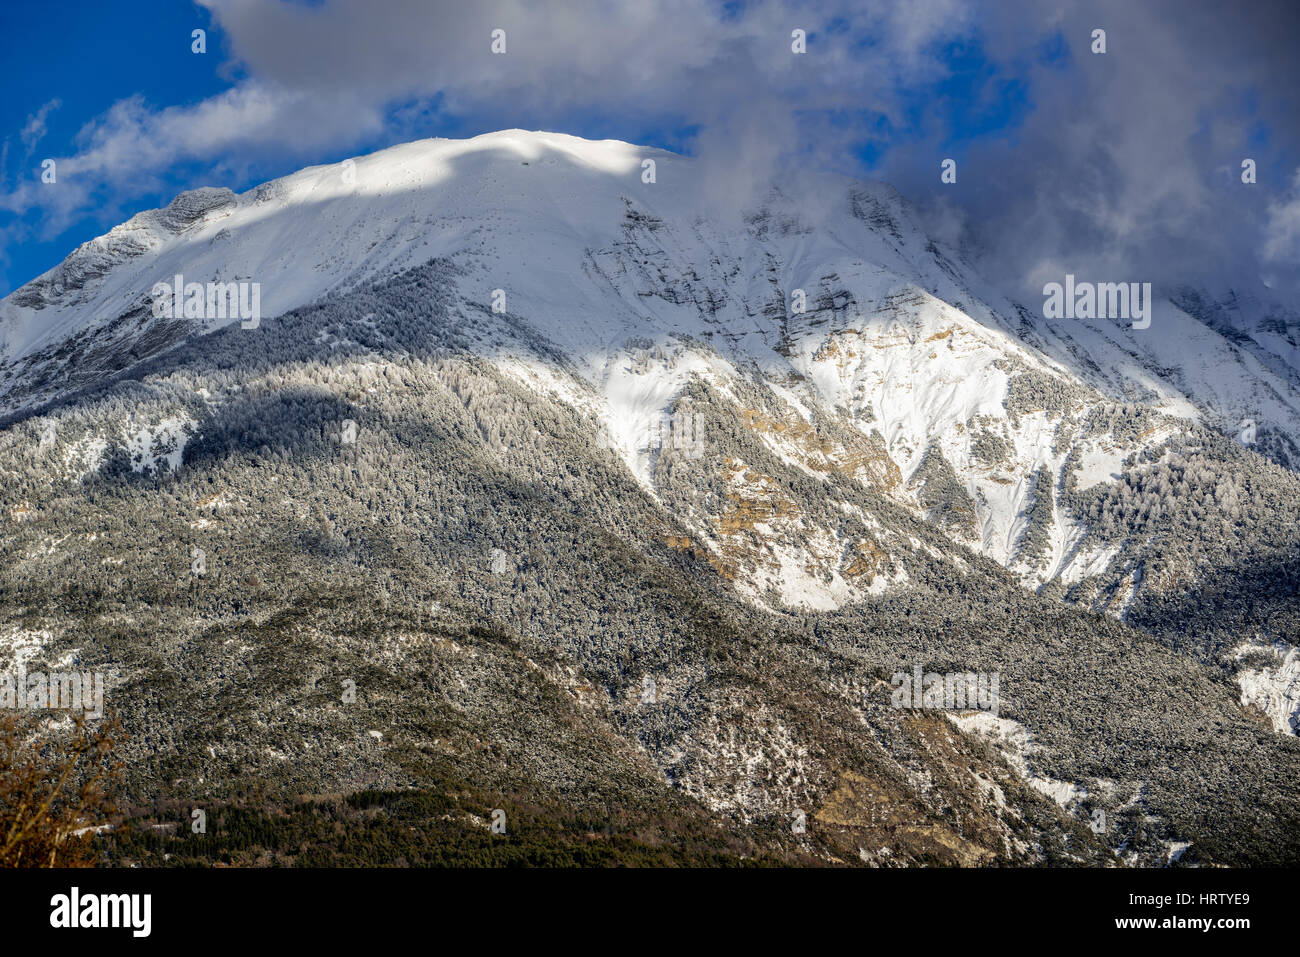 The mountain peak of Les Croix coverred in snow and frost in winter. Saint Andre d'Embrun, Hautes-Alpes, French - Stock Image